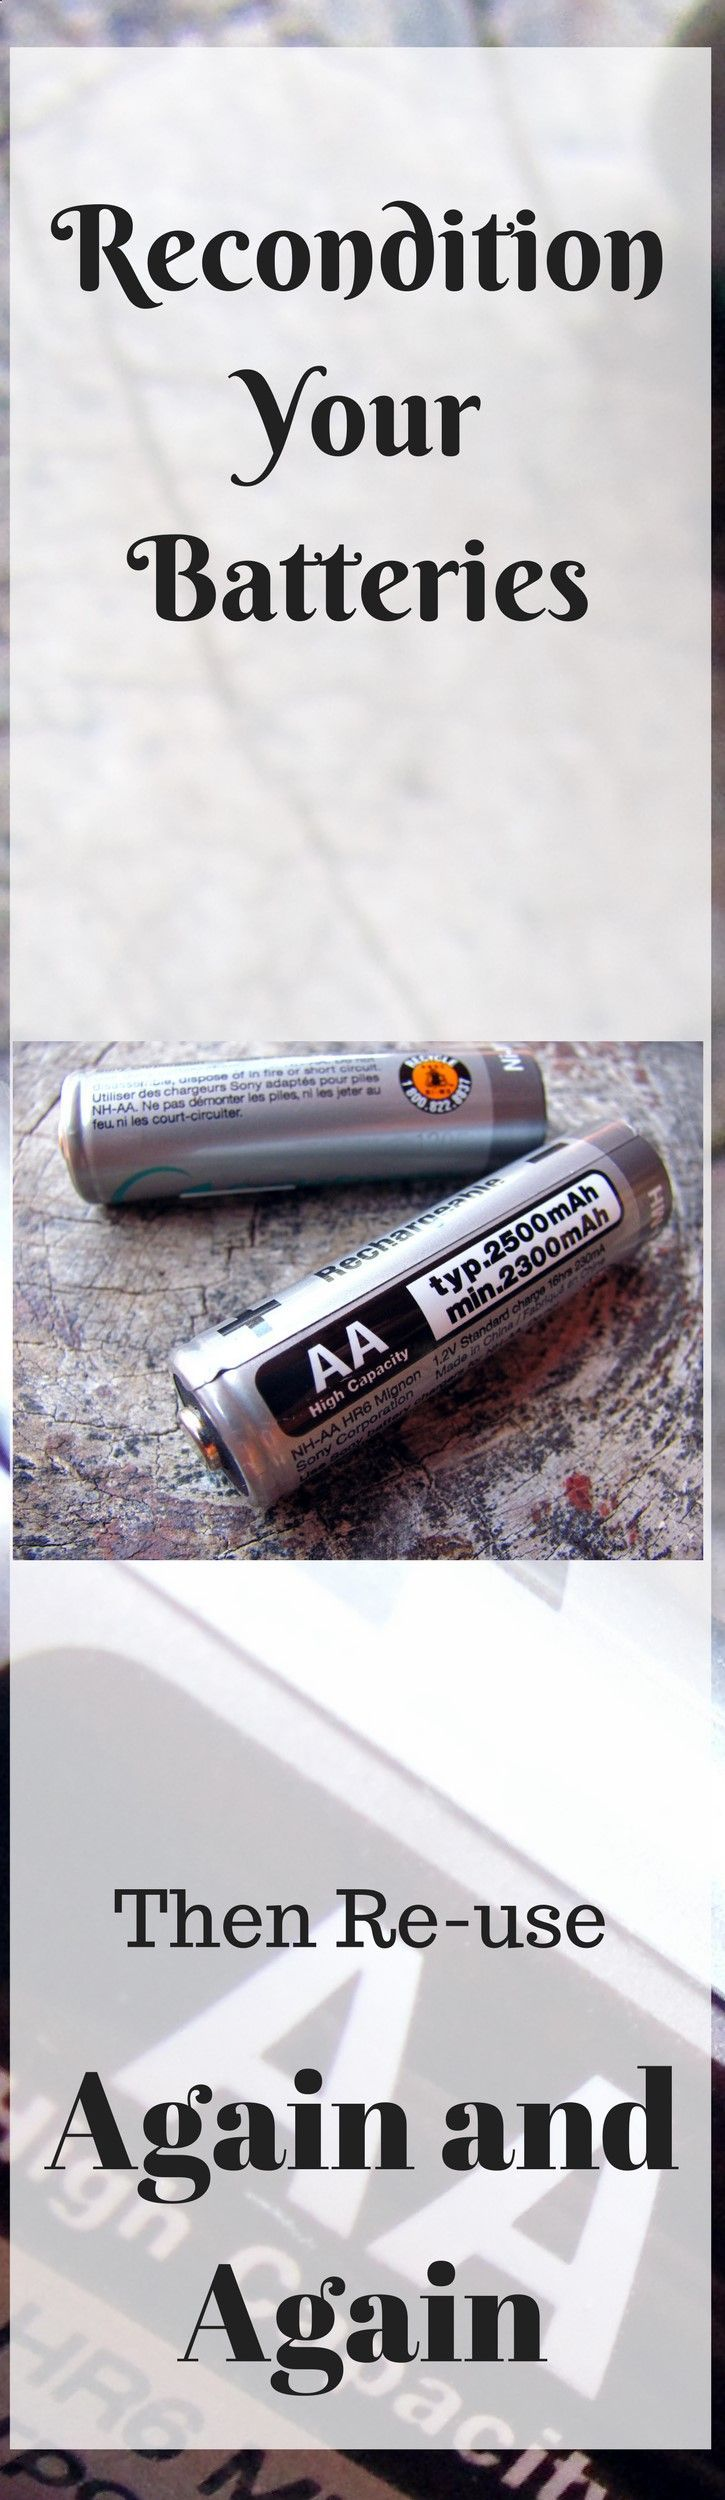 Battery Reconditioning - You dont have to buy new batteries. Recondition your old ones and use them again and again. - Save Money And NEVER Buy A New Battery Again #OldBatteriesPictures